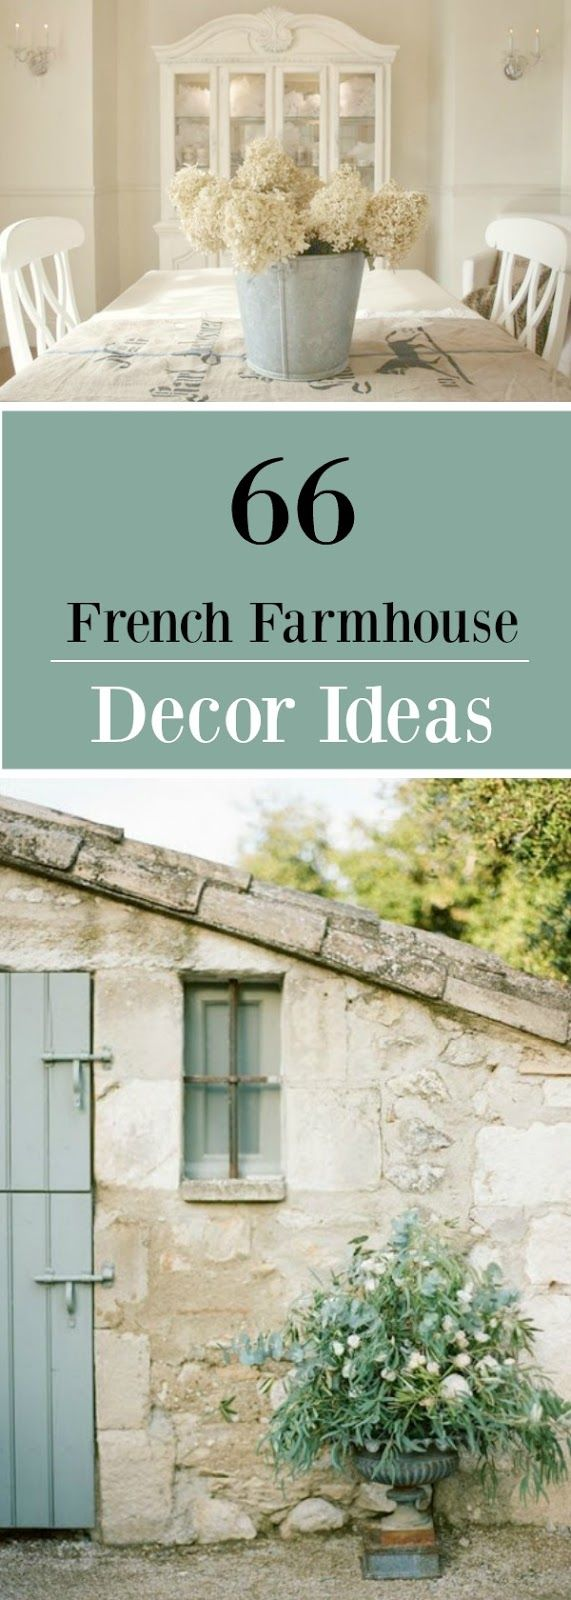 French Farmhouse Decor: Interiors and Exteriors Get your heart ready for one of the prettiest posts in the history of Hello Lovely (which as we…